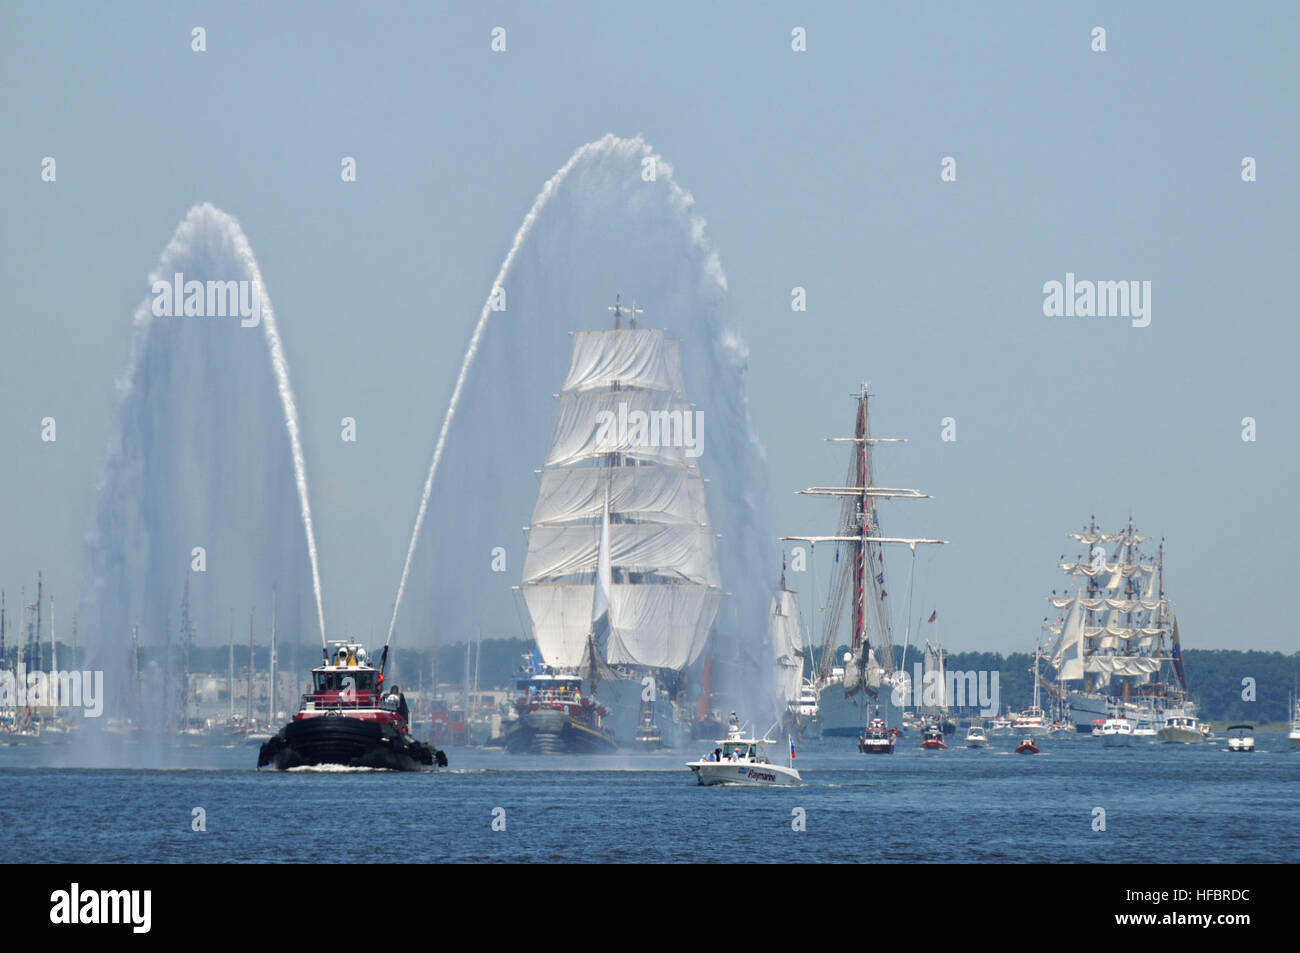 120608-N-WX580-013 NORFOLK (June 8, 2012) Tall ships make their way down the Elizabeth River during Operation Sail - Stock Image